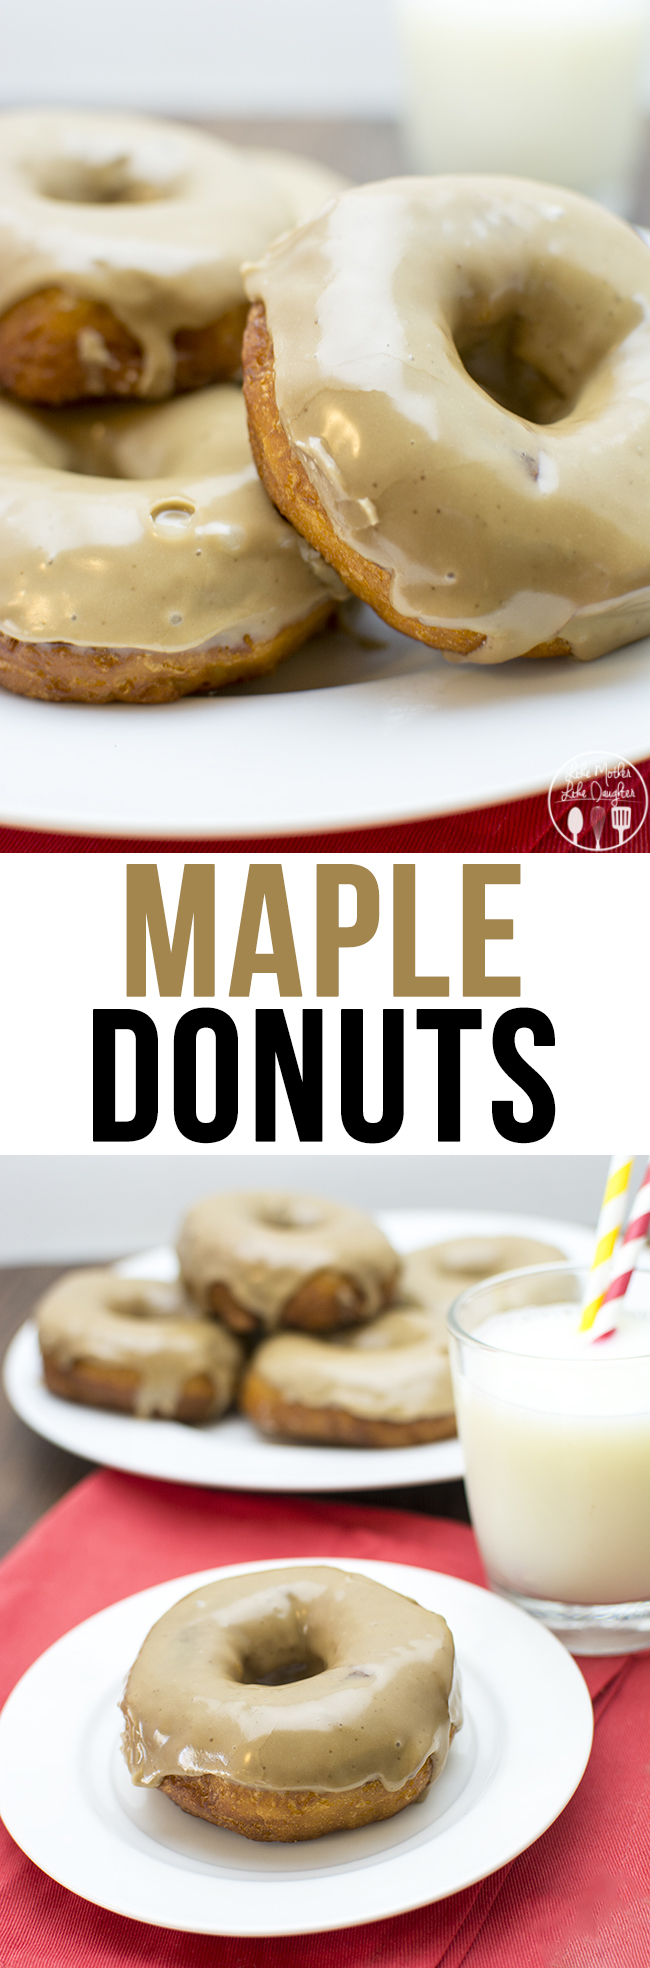 Maple Donuts - have delicious maple donuts at home with this easy recipe using canned biscuits and a delicious maple glaze!